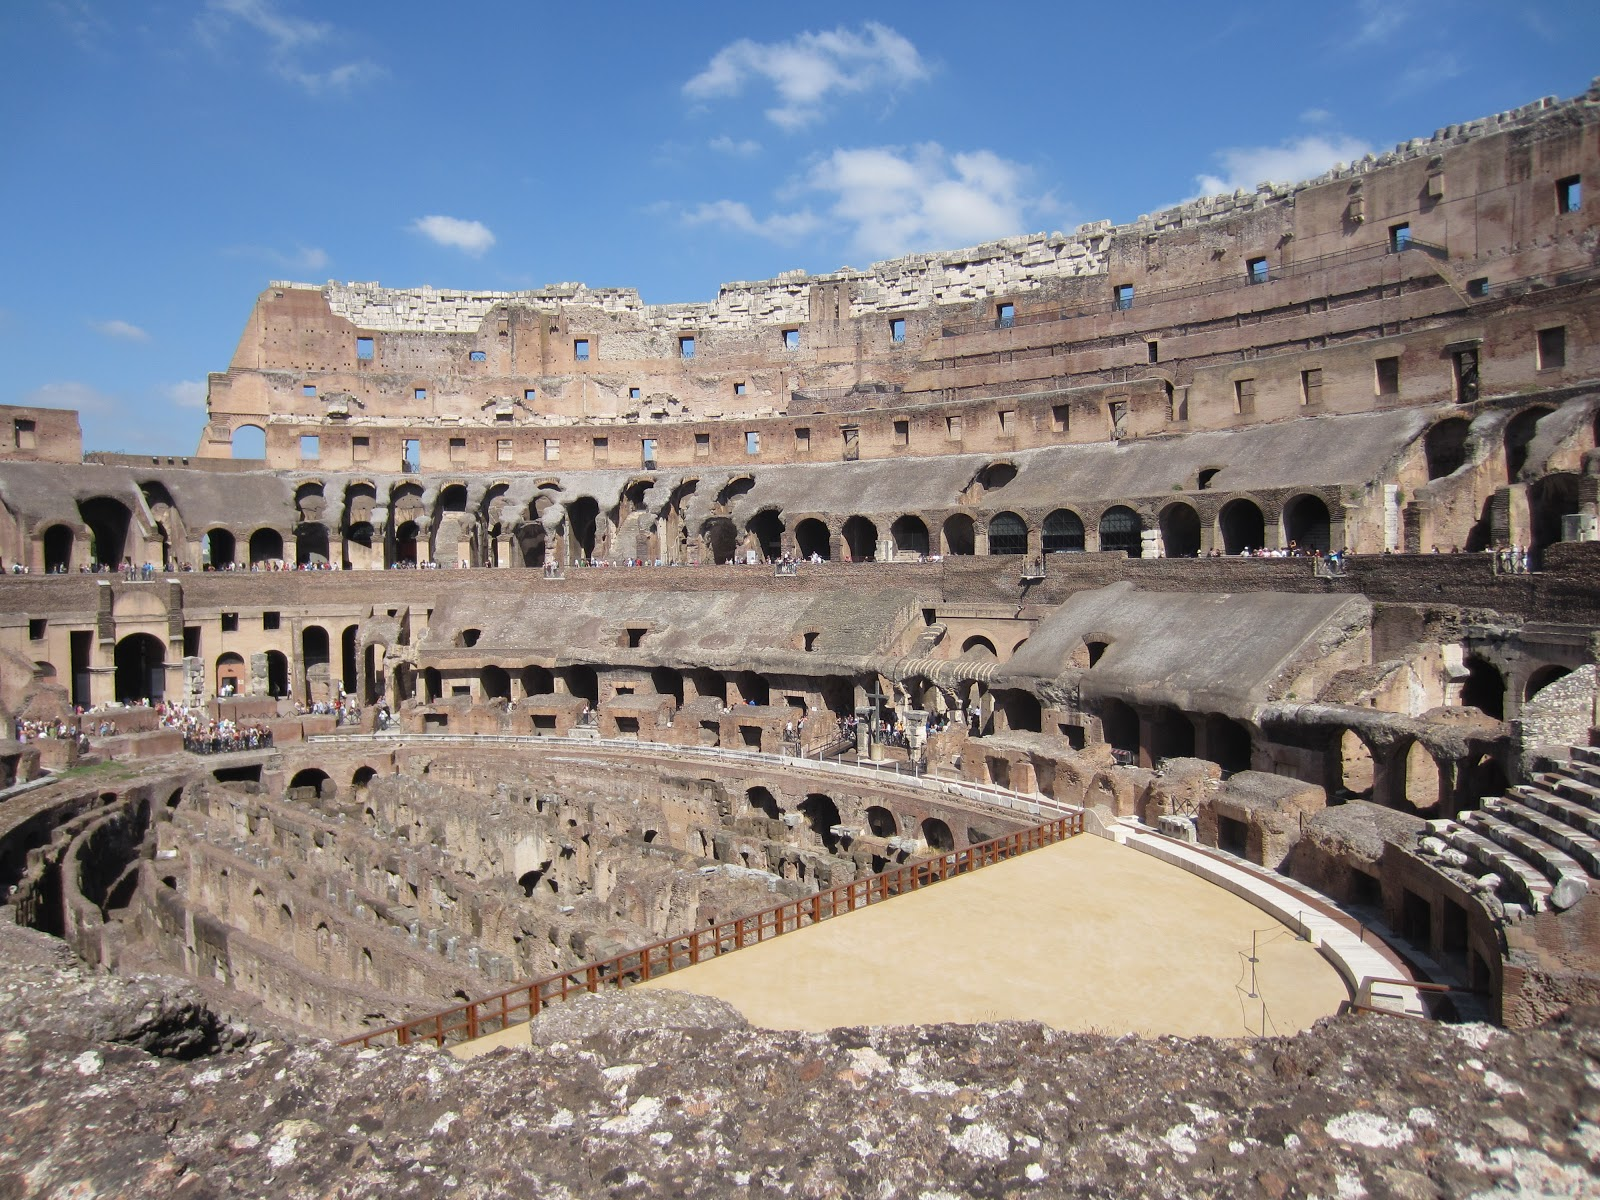 Pay A Visit: Uncovering Ancient Rome: The Colosseum & Forum